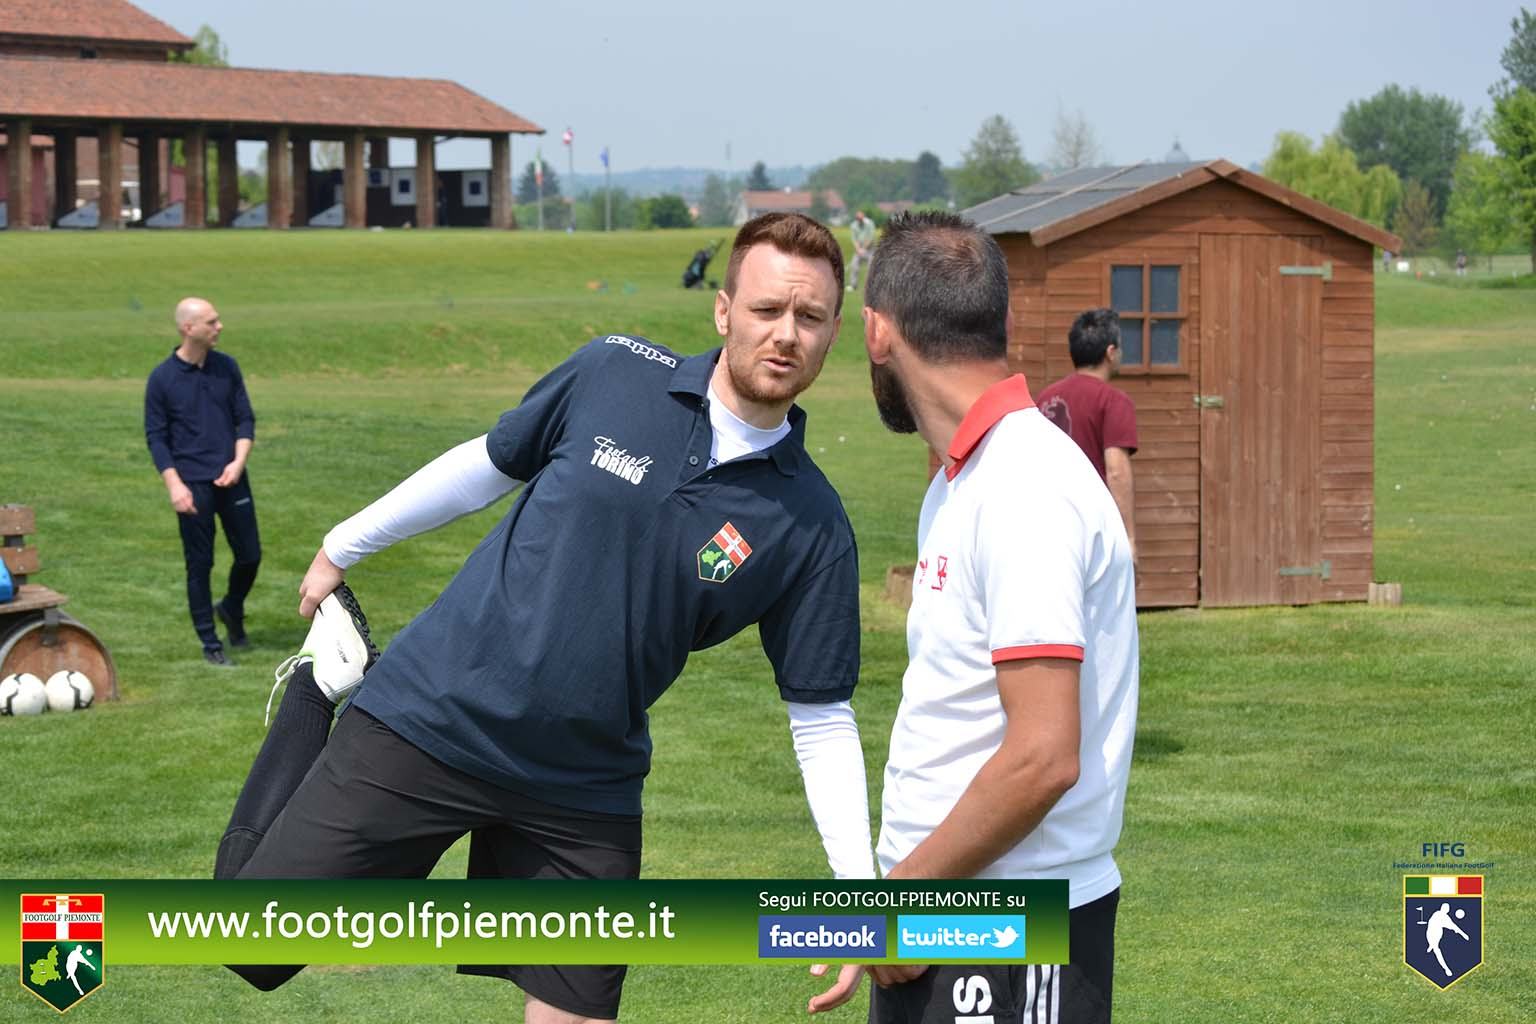 FOTO 9 Regions' Cup Footgolf Piemonte 2016 Golf Città di Asti (At) 30apr16-66